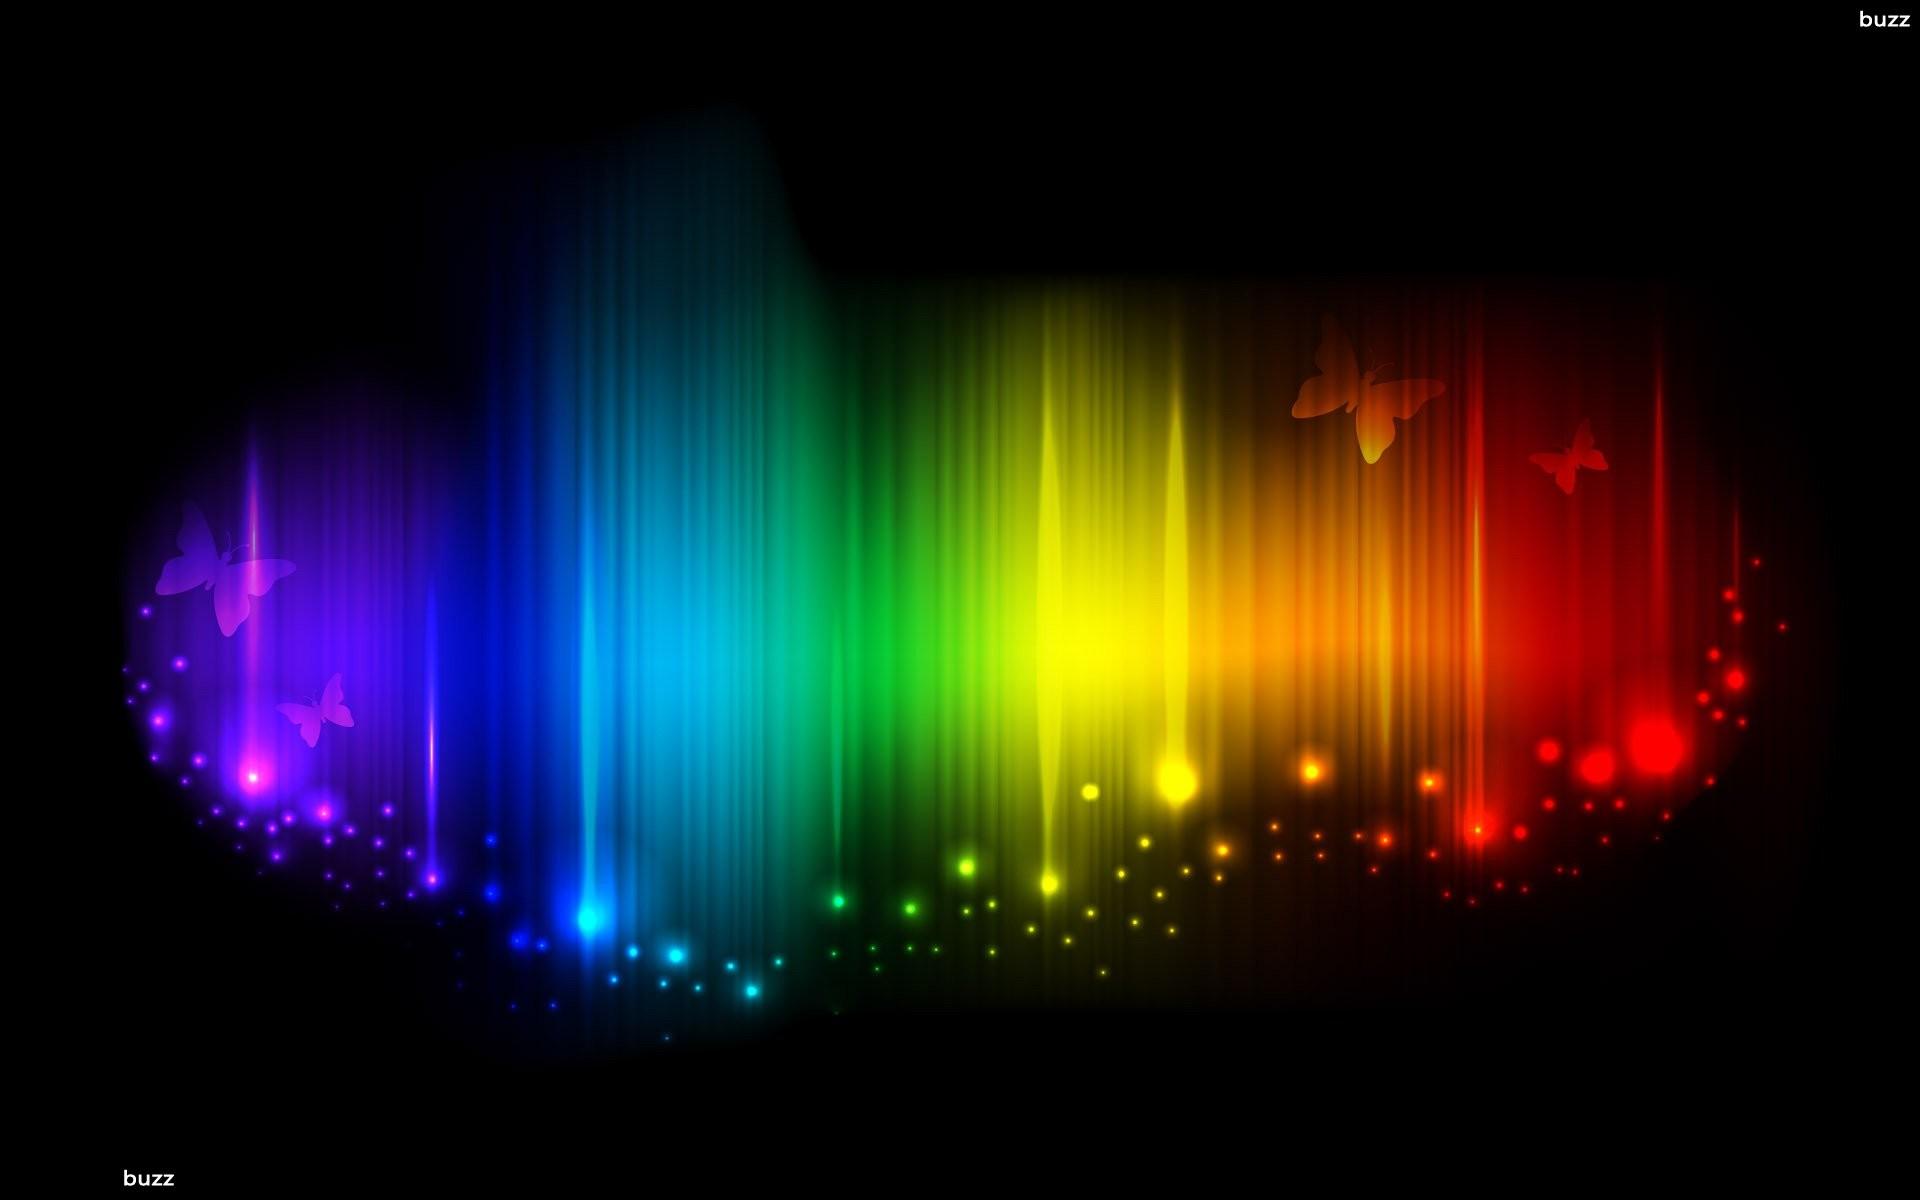 Abstract Backgrounds : The Colours of Rainbow – Rainbow Colors Abstract  Backgrounds 45